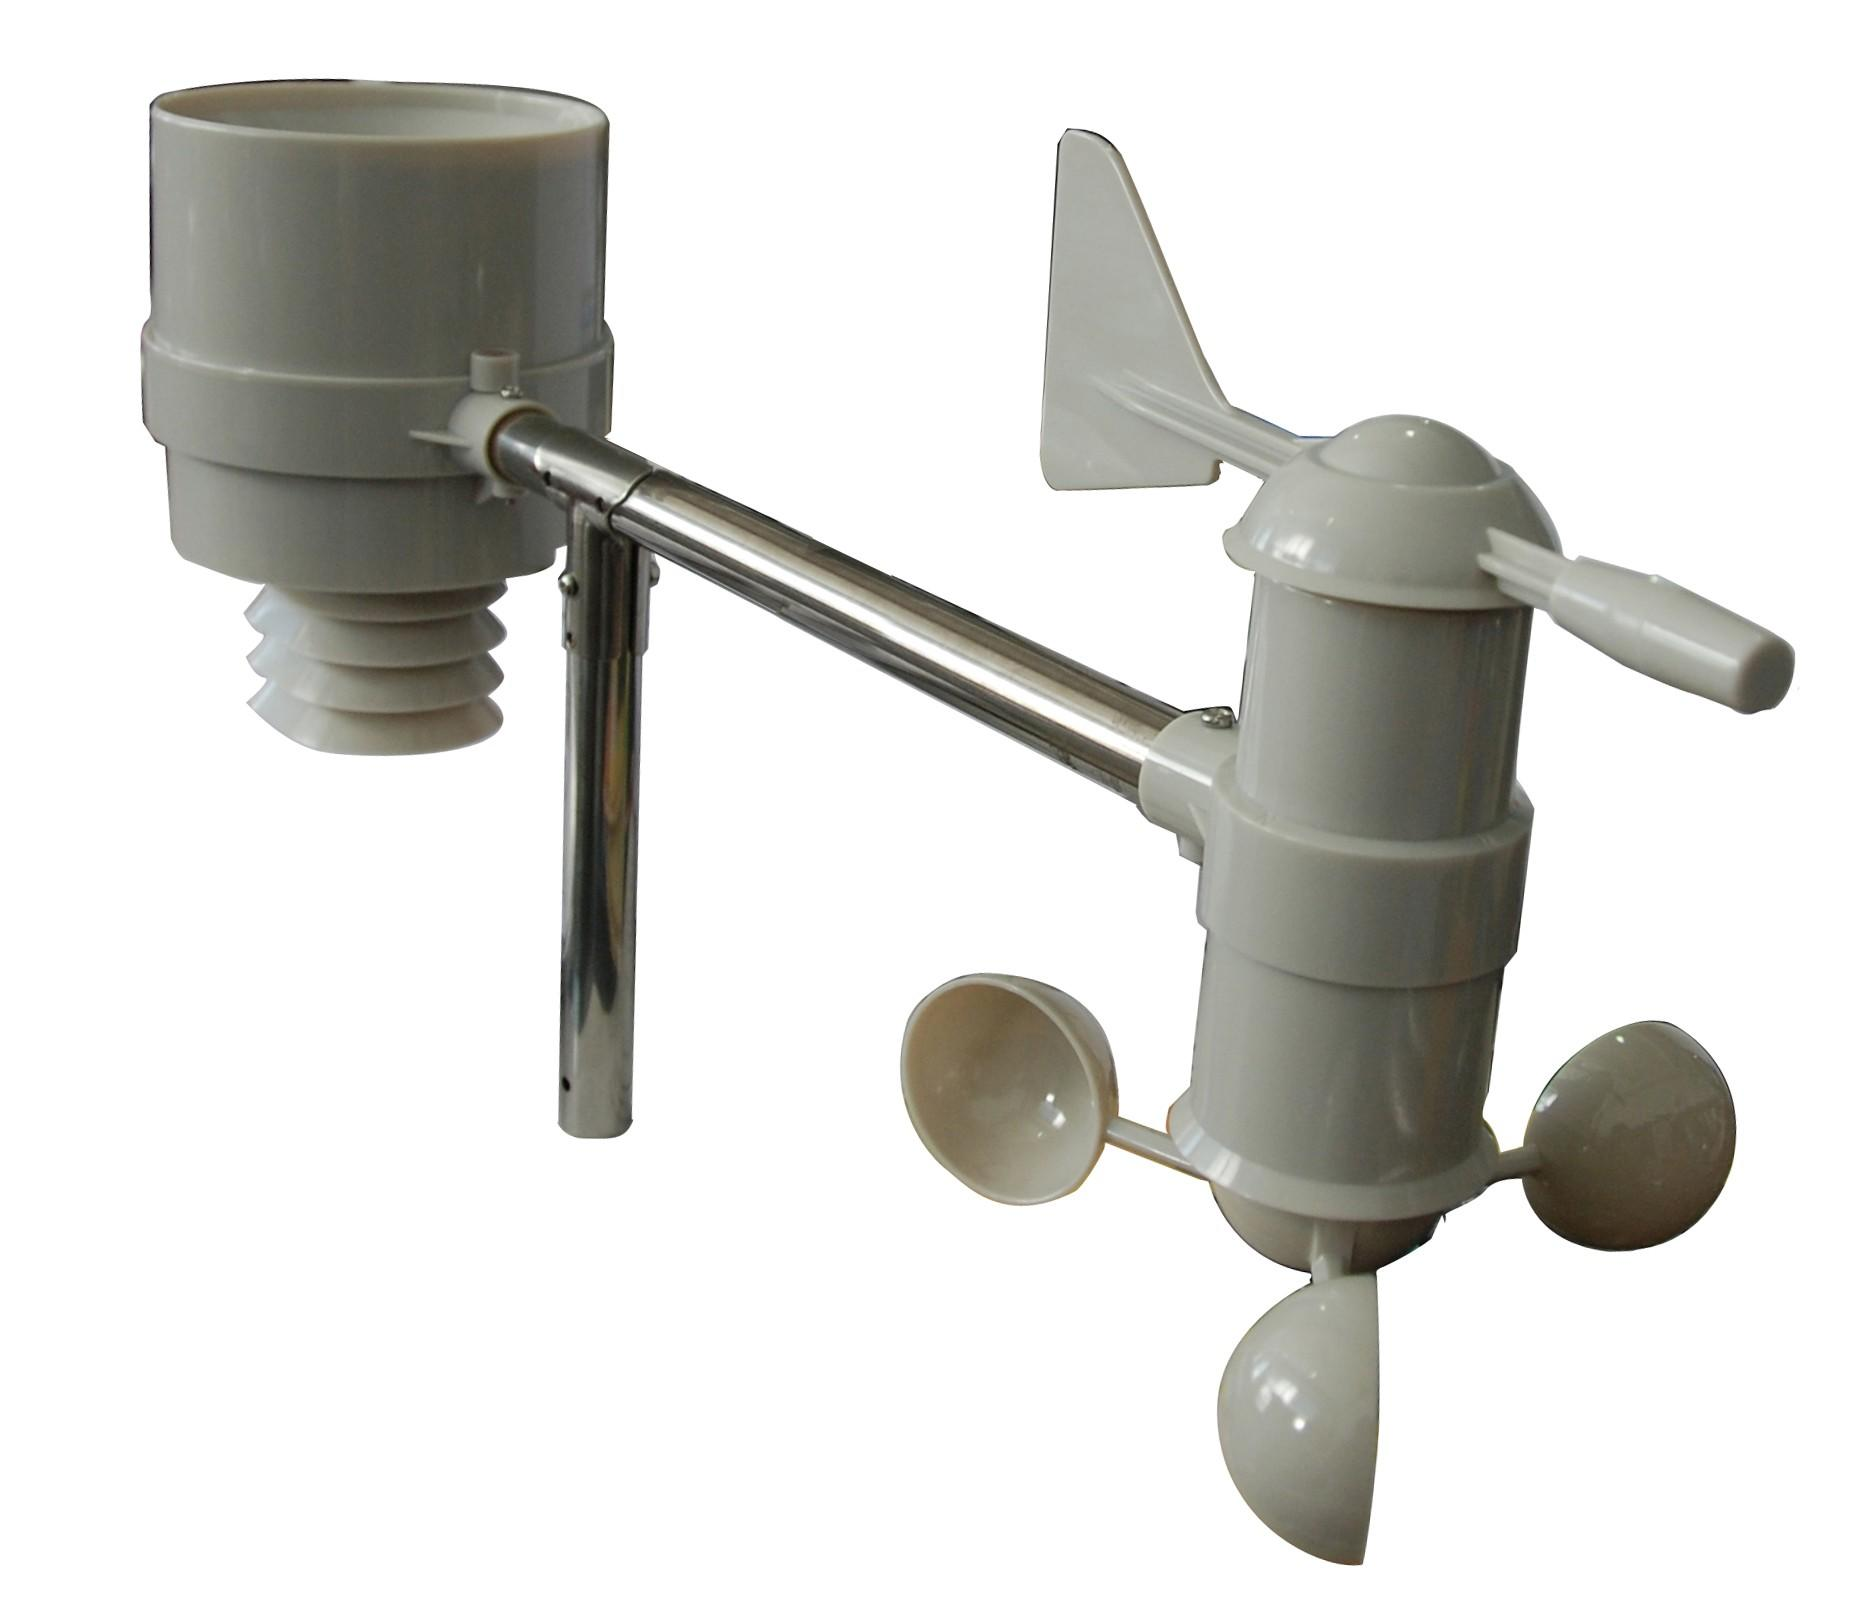 W-8682-MKii Wireless weather station2